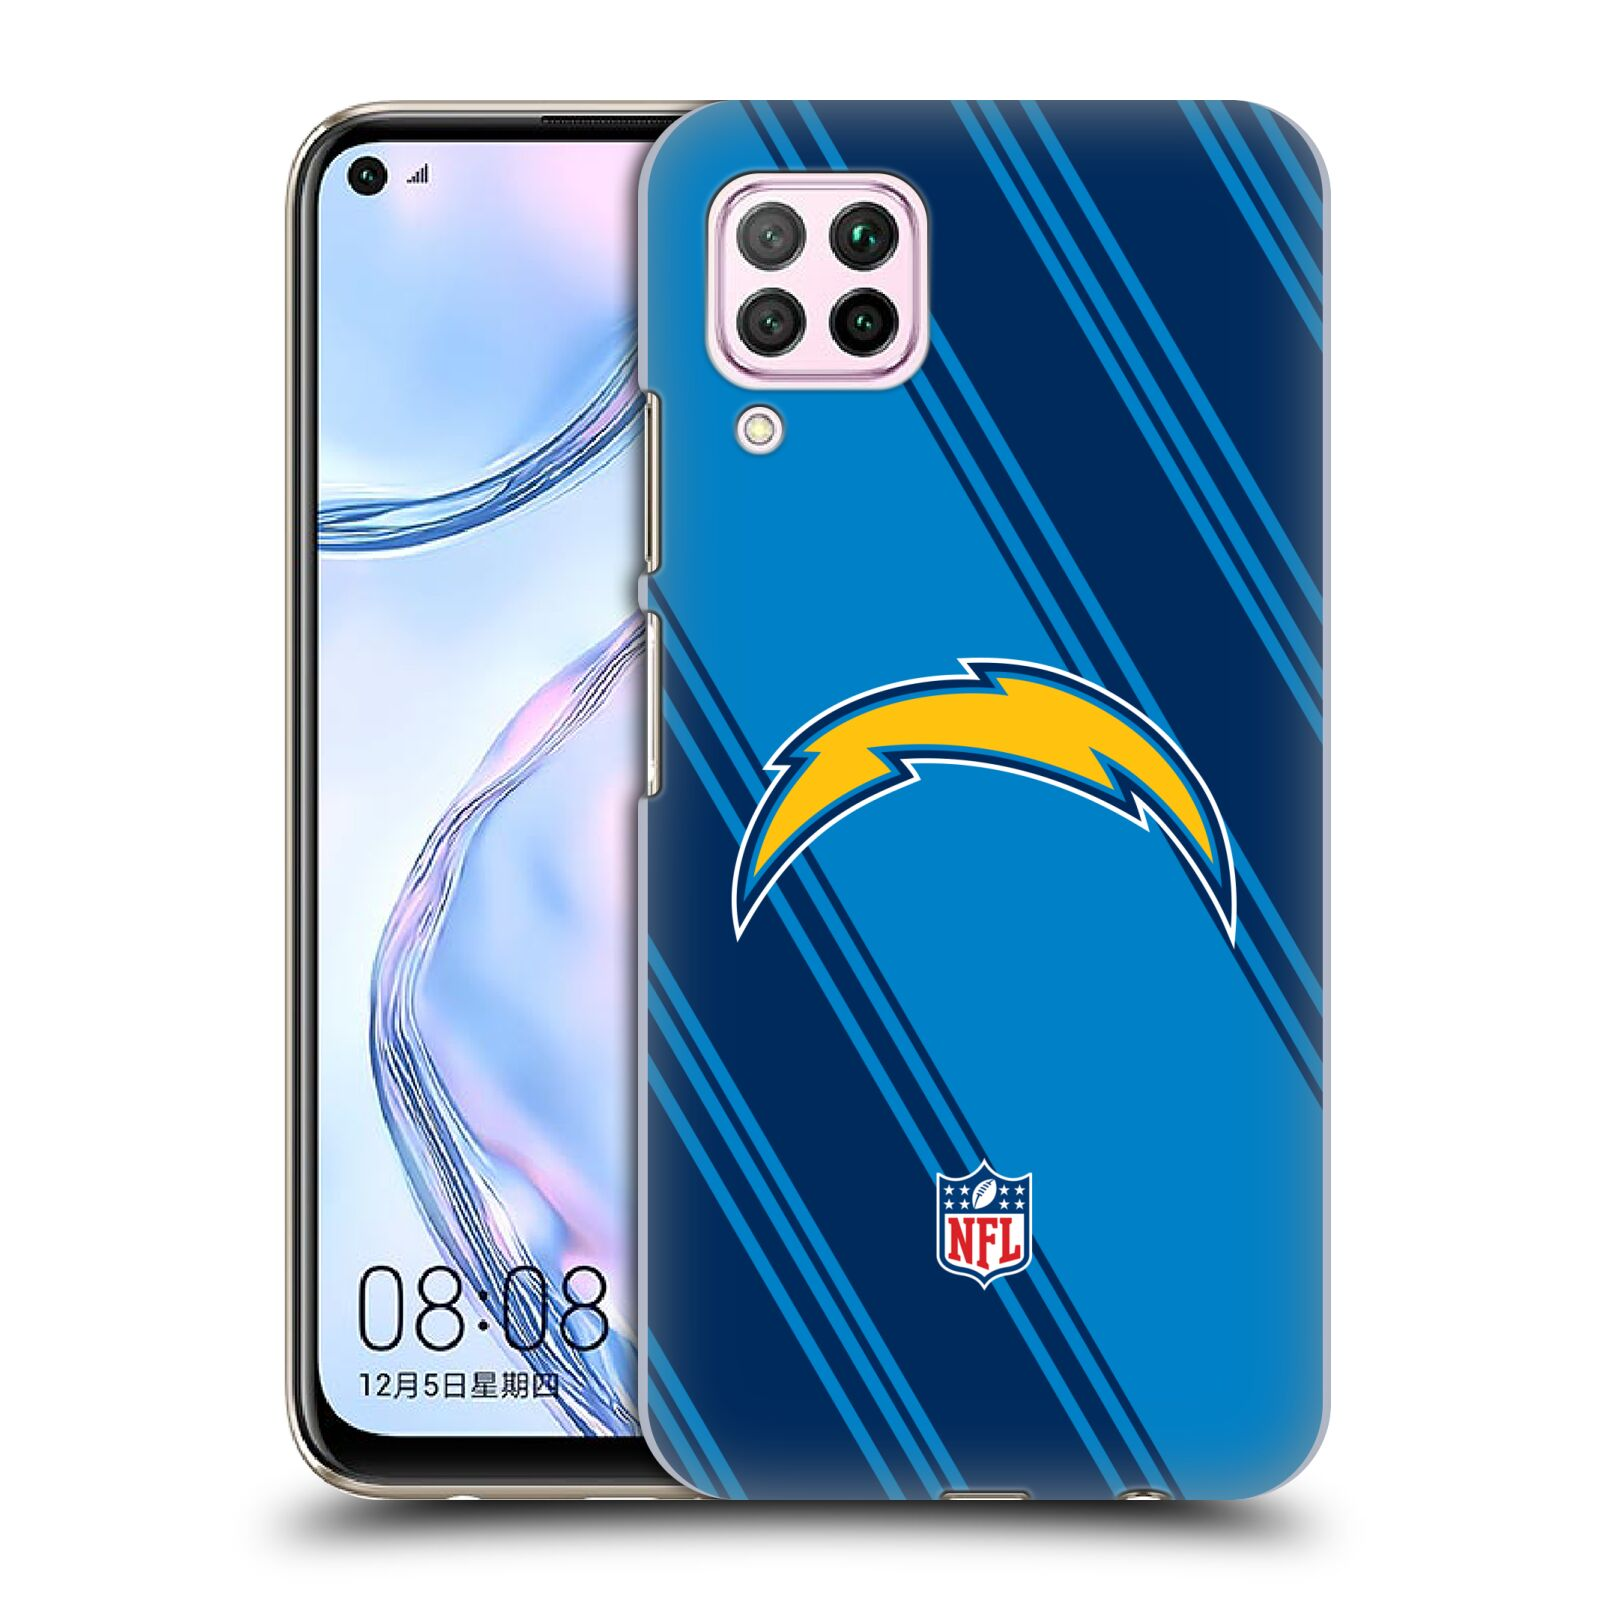 Official NFL 2017/18 Los Angeles Chargers Stripes Case for Huawei Nova 6 SE